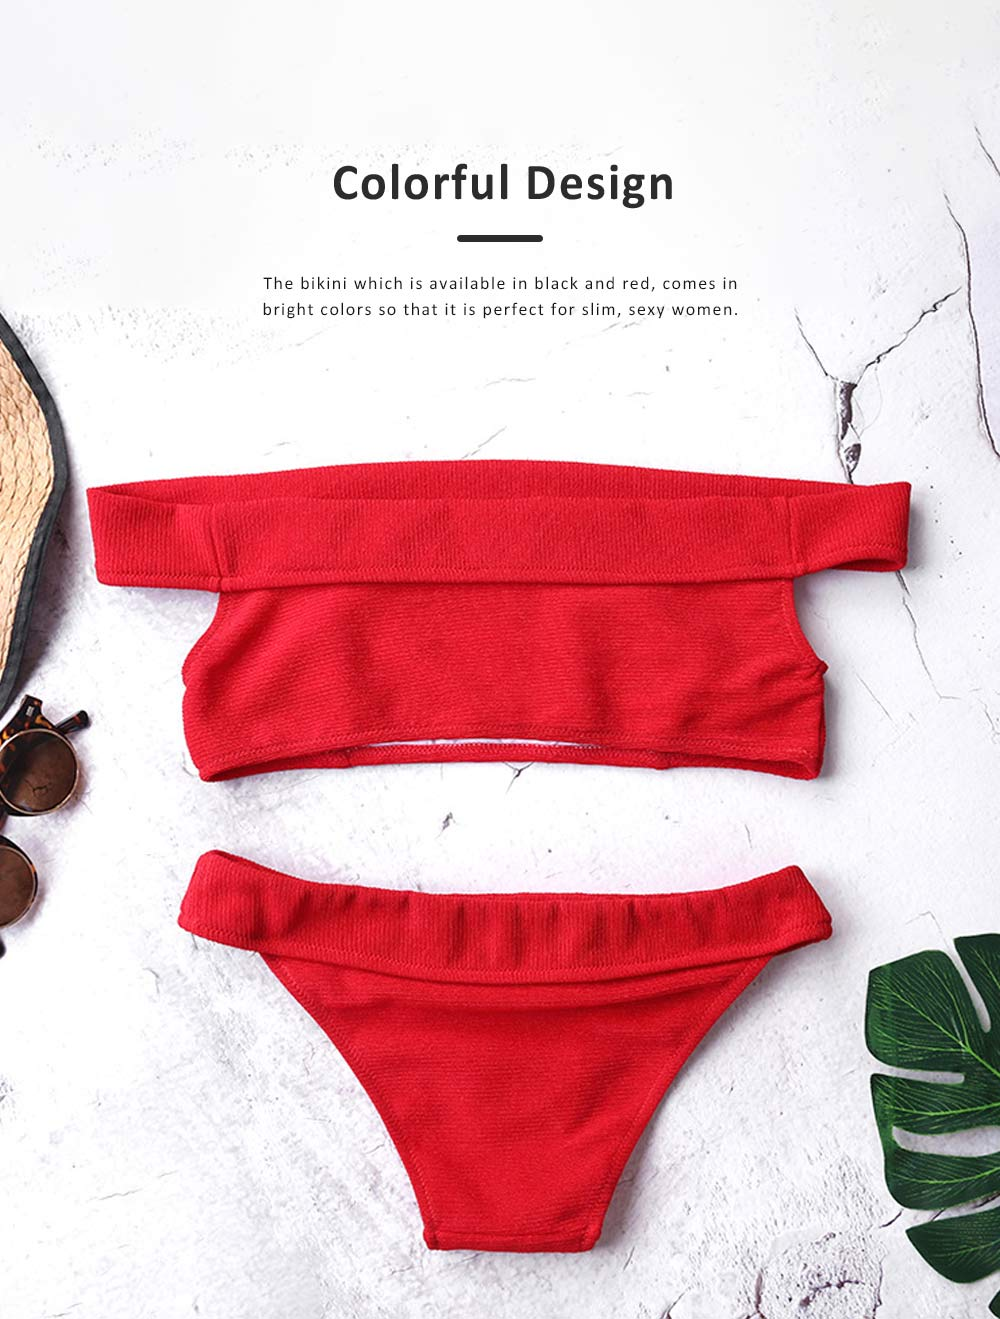 2019 New Hot Off-shoulde Bikini for Women, Two Piece Slim Fit Bikini, Off Shoulder Beach Wear Suit Red Black 4